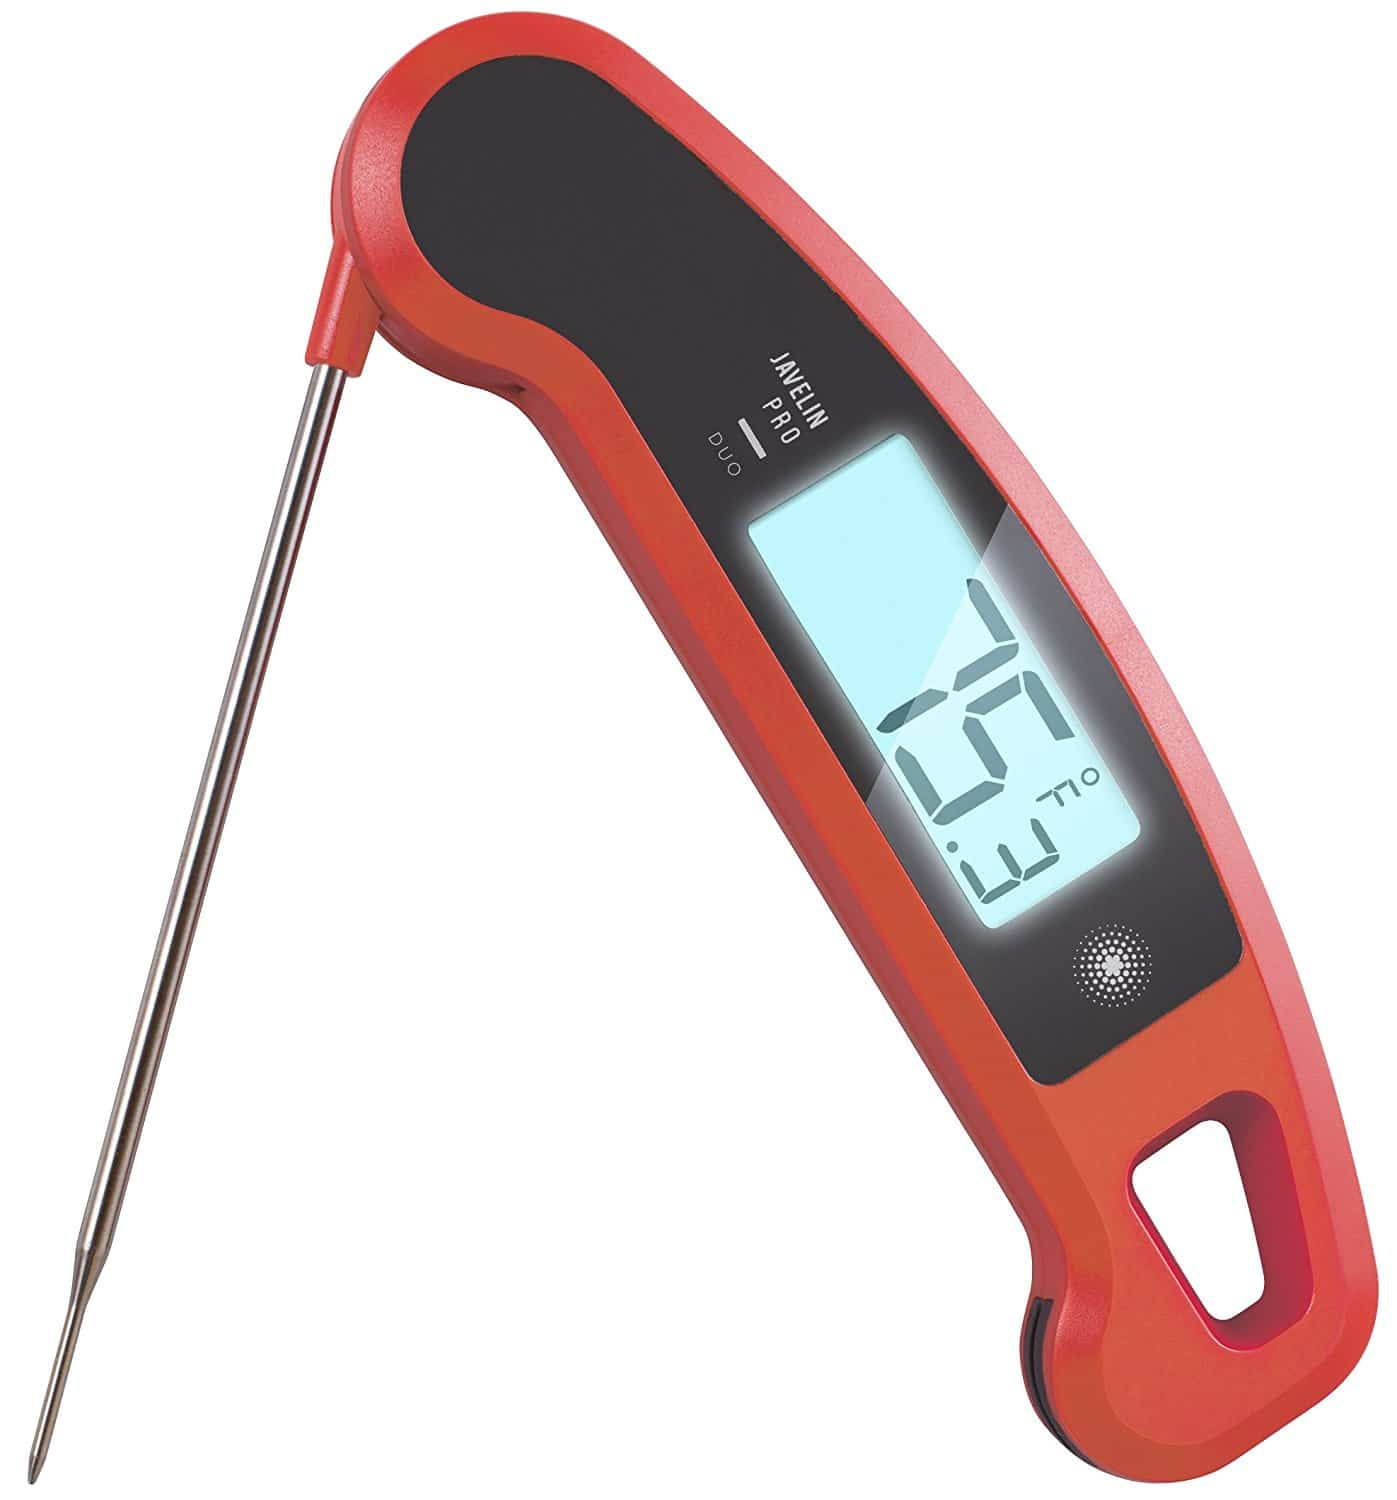 lavatools javelin pro duo ambidextrous backlit instant read digital meat thermometer the. Black Bedroom Furniture Sets. Home Design Ideas